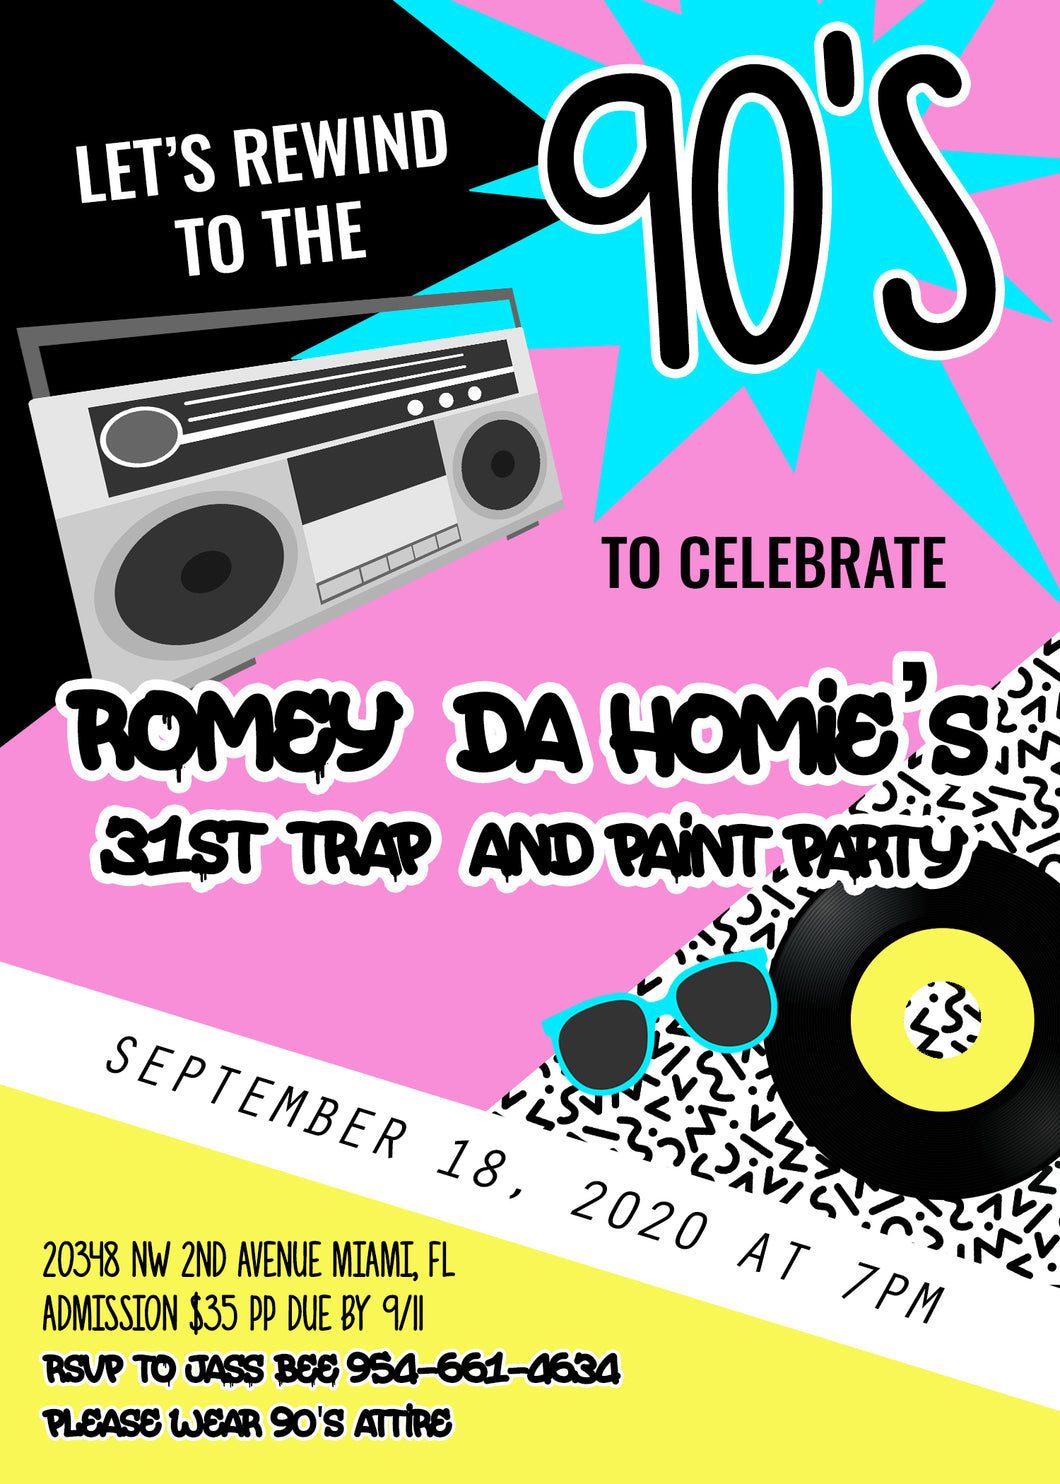 Romey Da Homie's 31st Trap & Paint Party ! - September, 18th 2020 7:00 to 10:00 pm